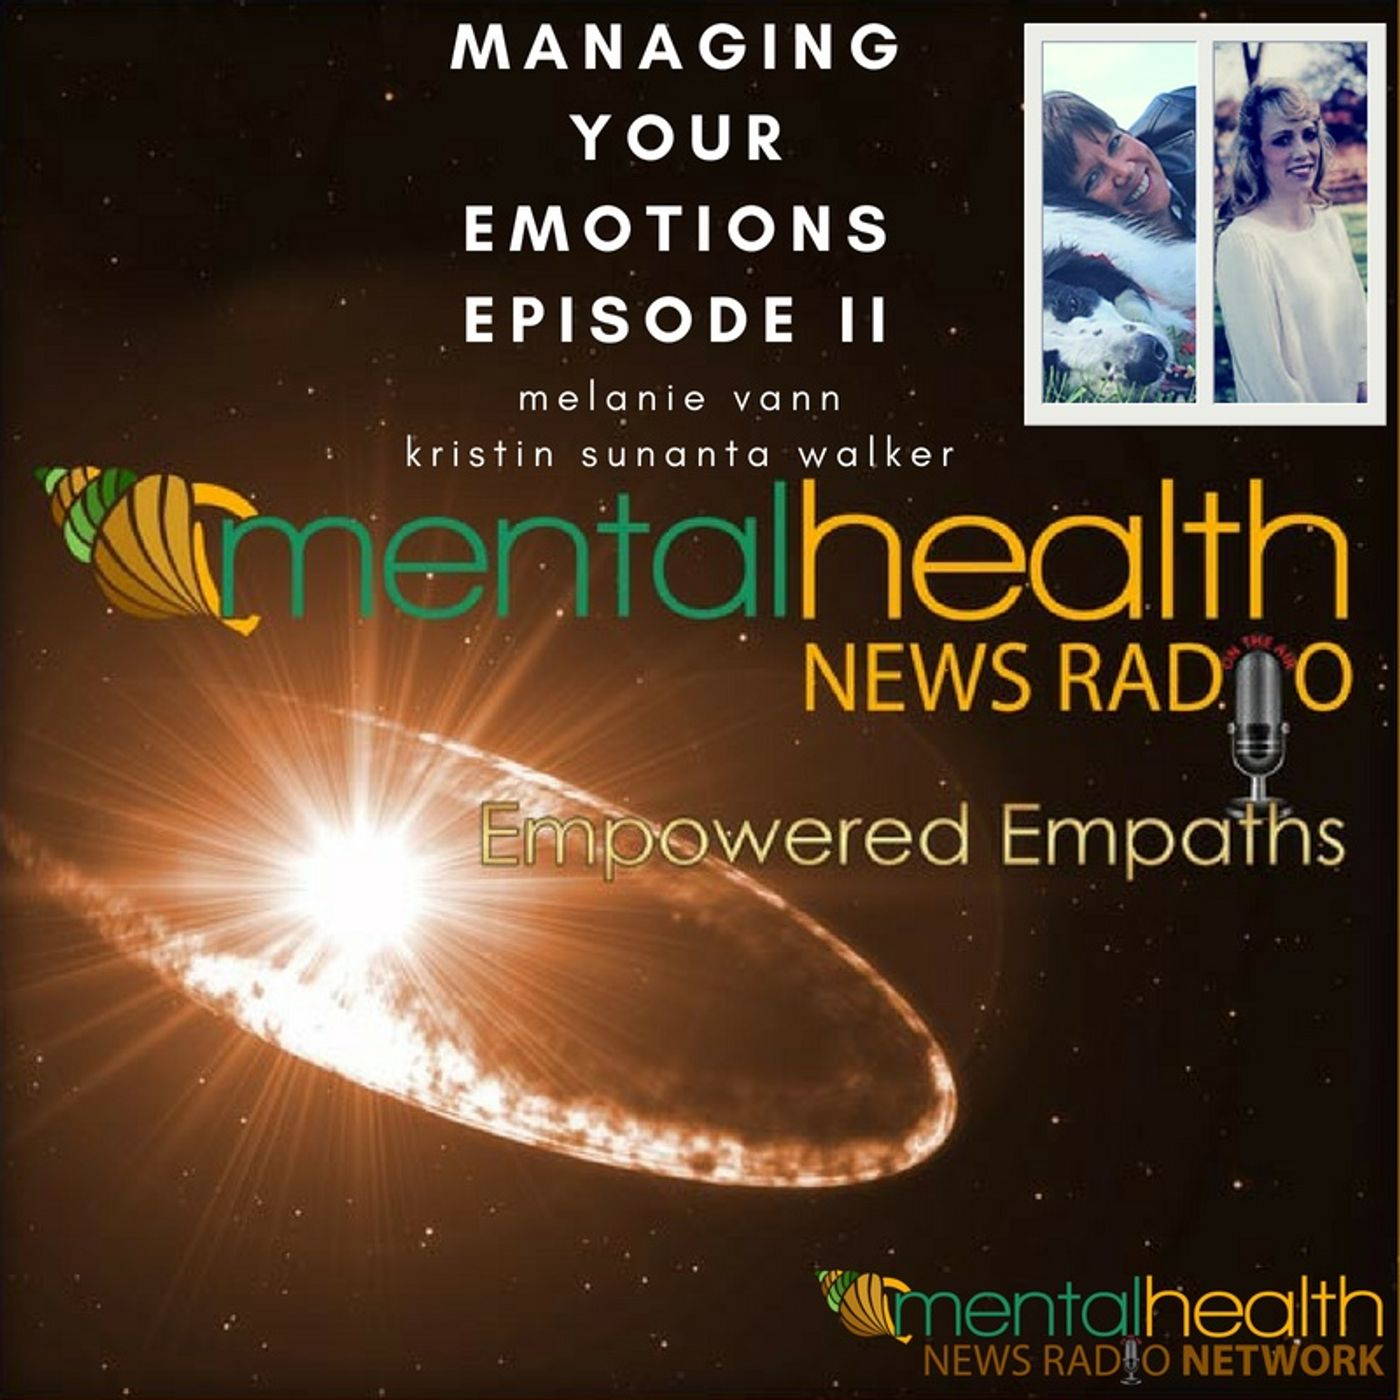 Mental Health News Radio - Empowered Empaths: Managing Your Emotions Part II